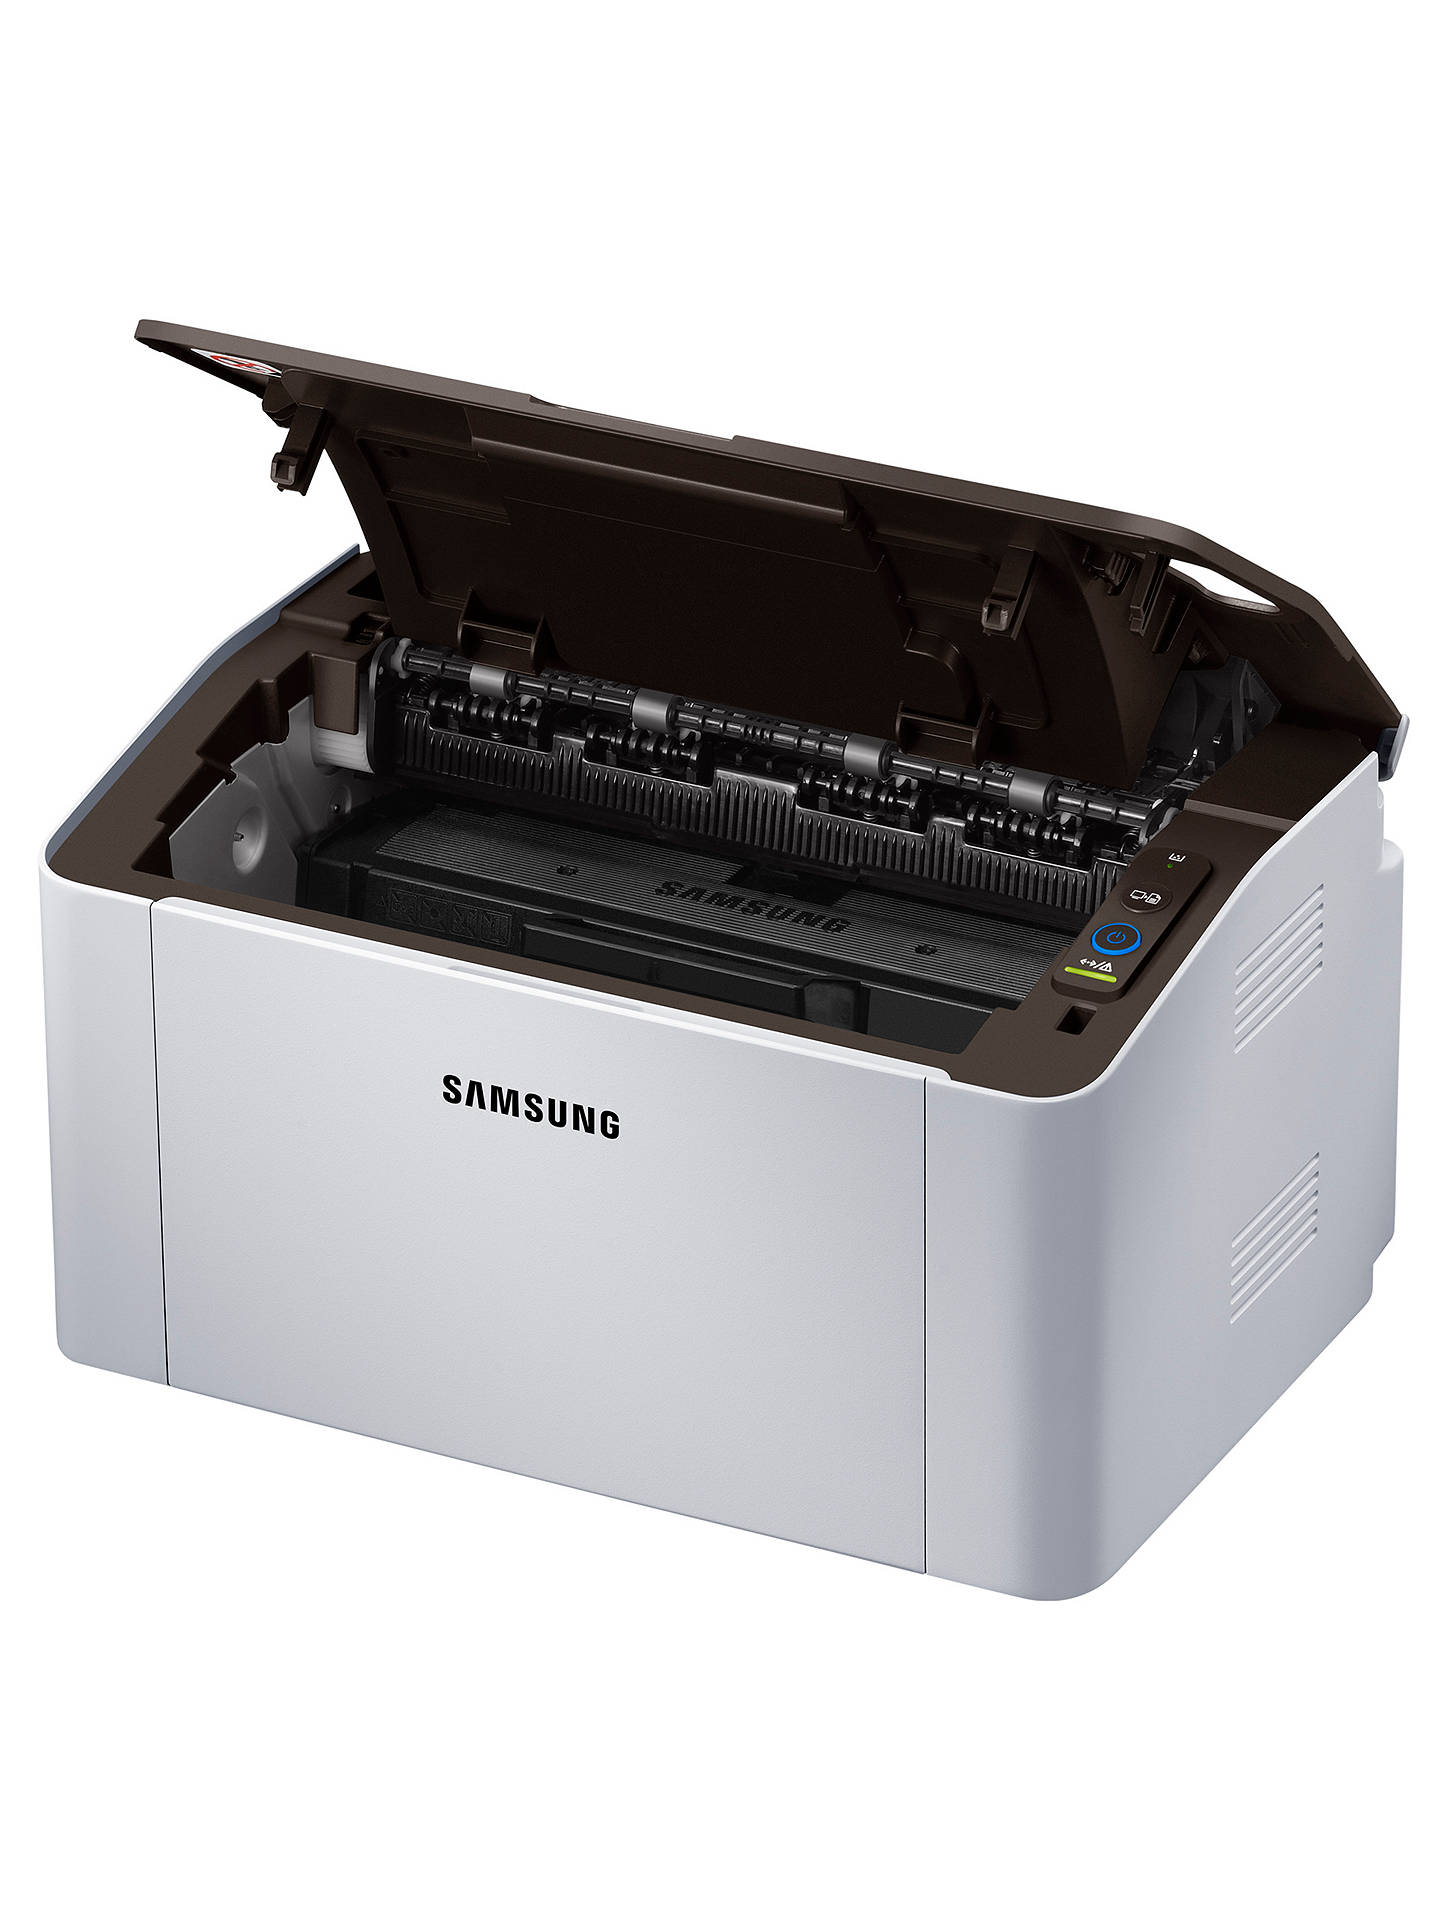 Buy Samsung Xpress M2026 Monochrome Laser Printer Online at johnlewis.com